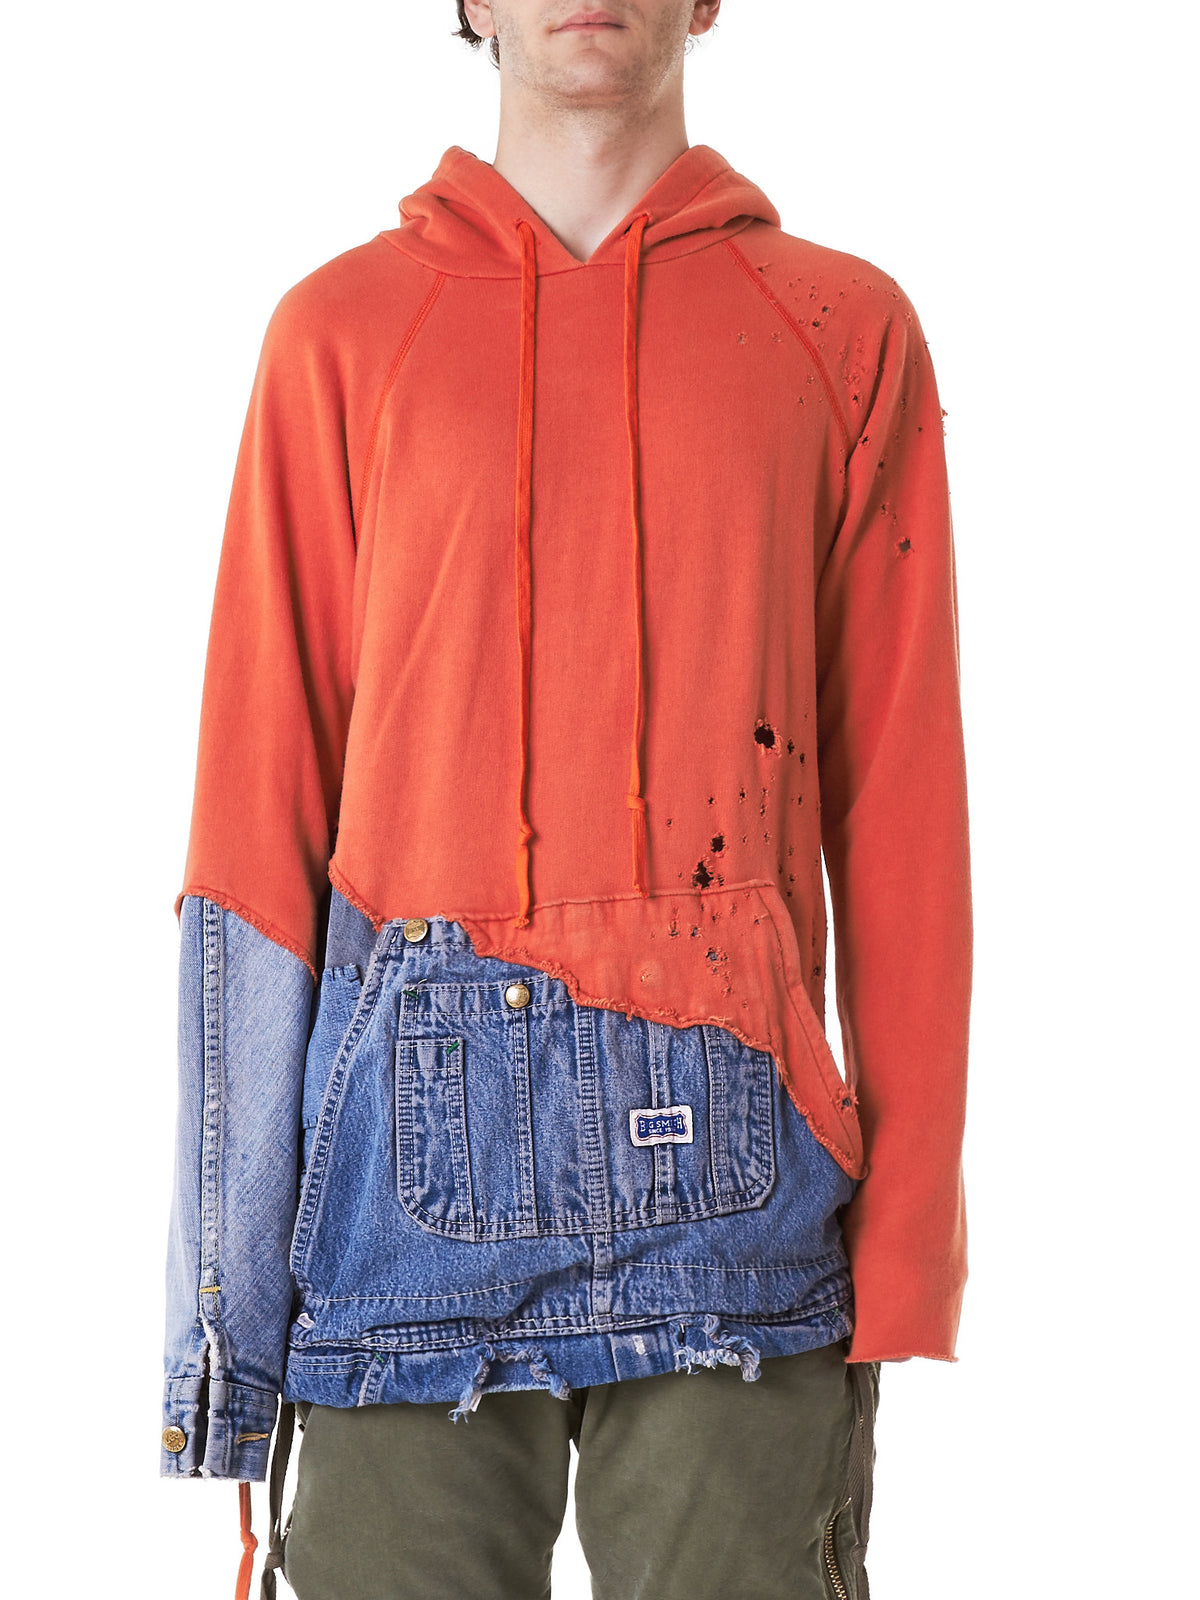 Reconstructed Hooded Sweater (GLSS17-M052-ORANGE-DENIMBLUE) - H. Lorenzo